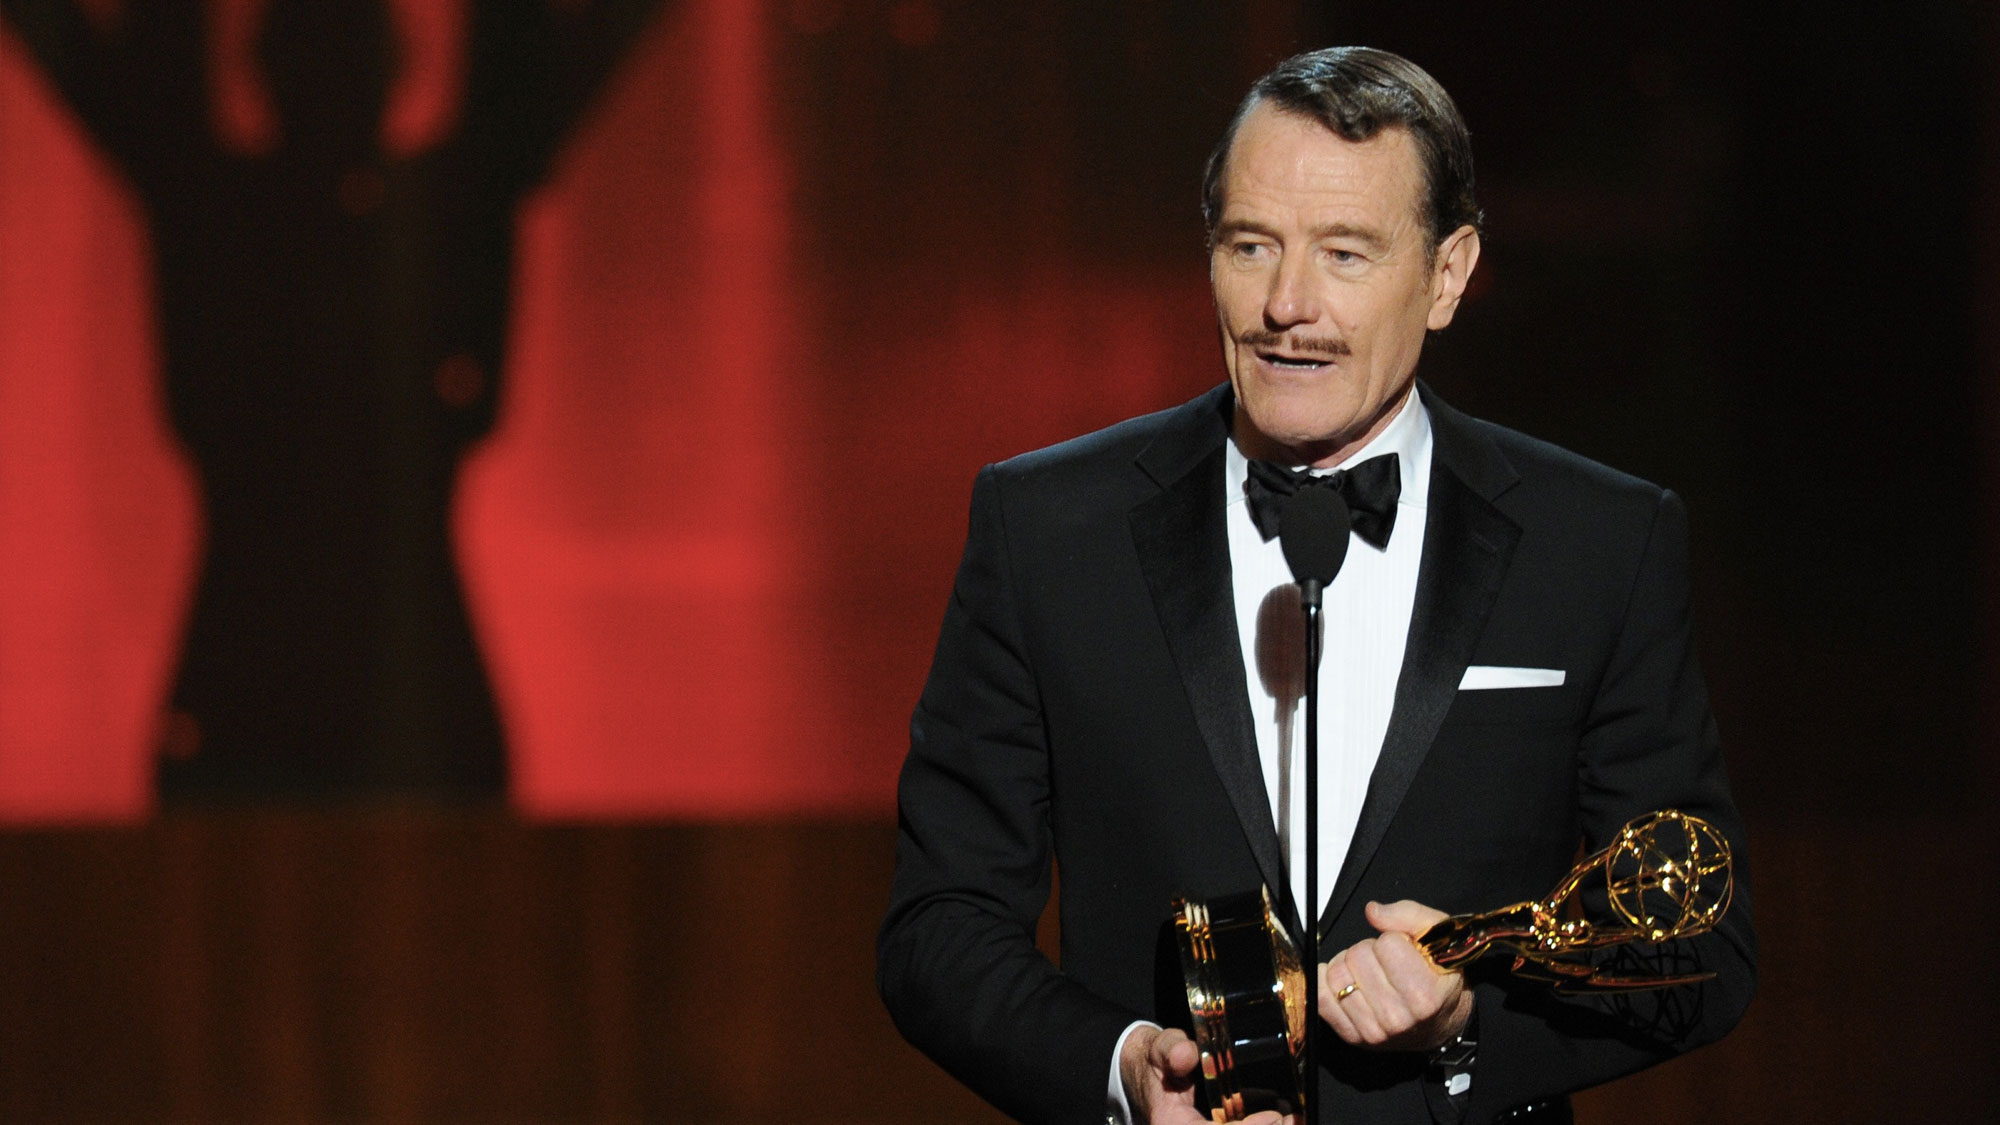 Emmy Awards 2014 : la consécration de Bryan Cranston